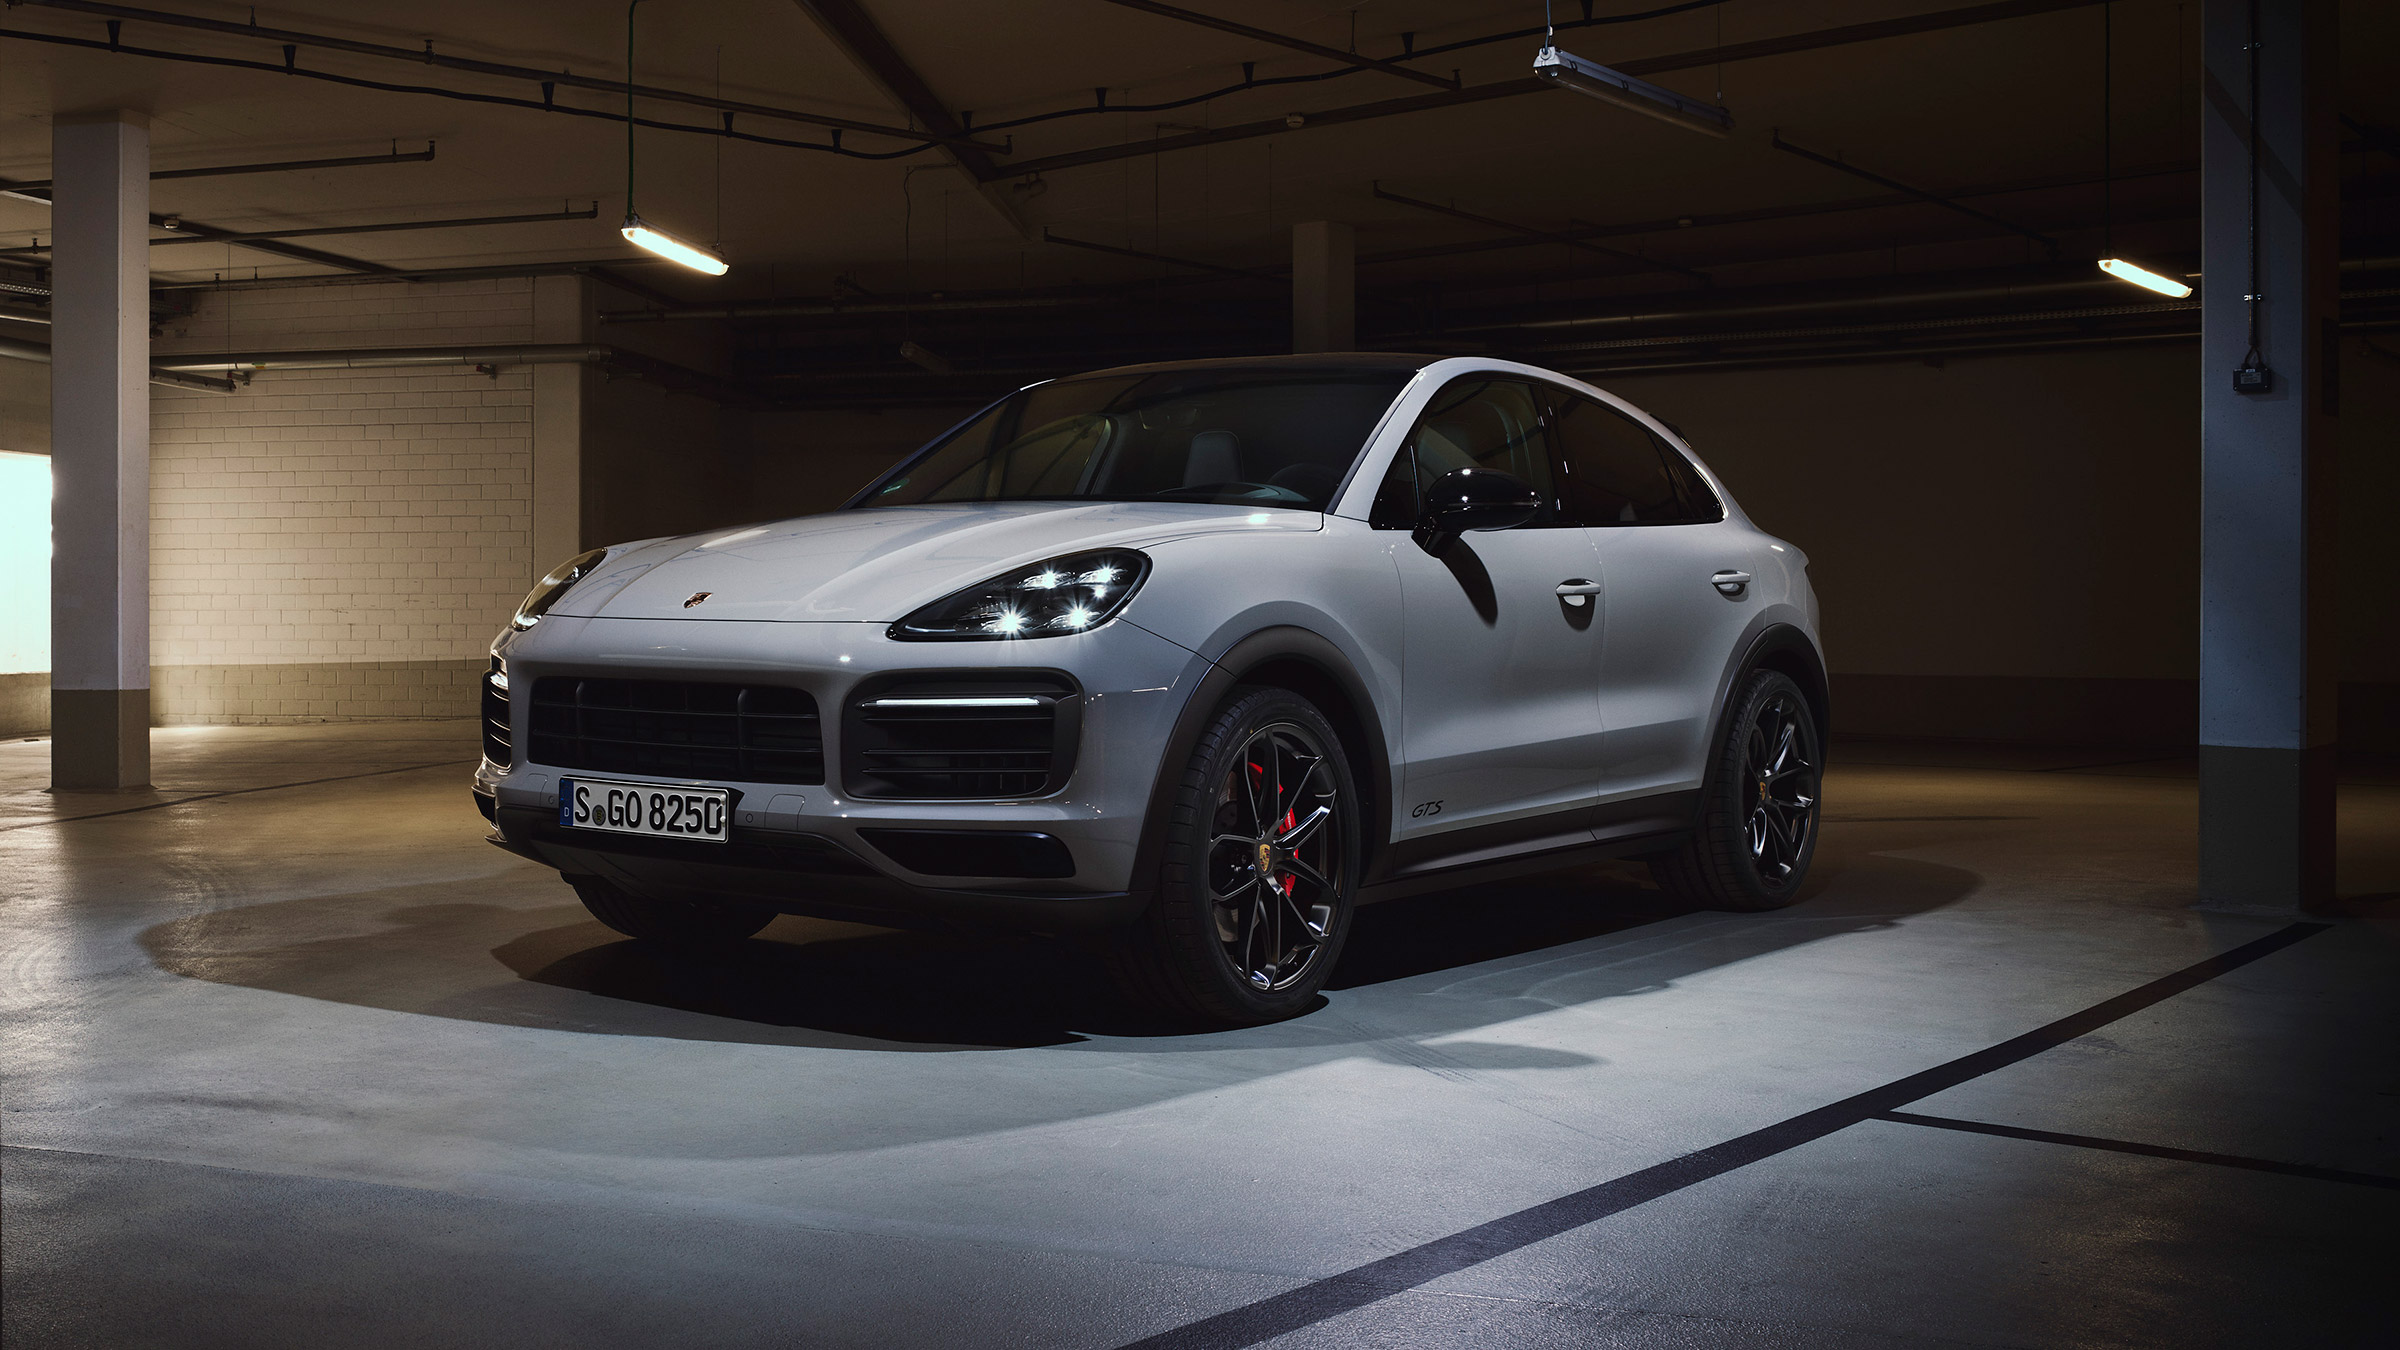 2020 Porsche Cayenne Gts And Cayenne Coupe Gts Revealed Evo